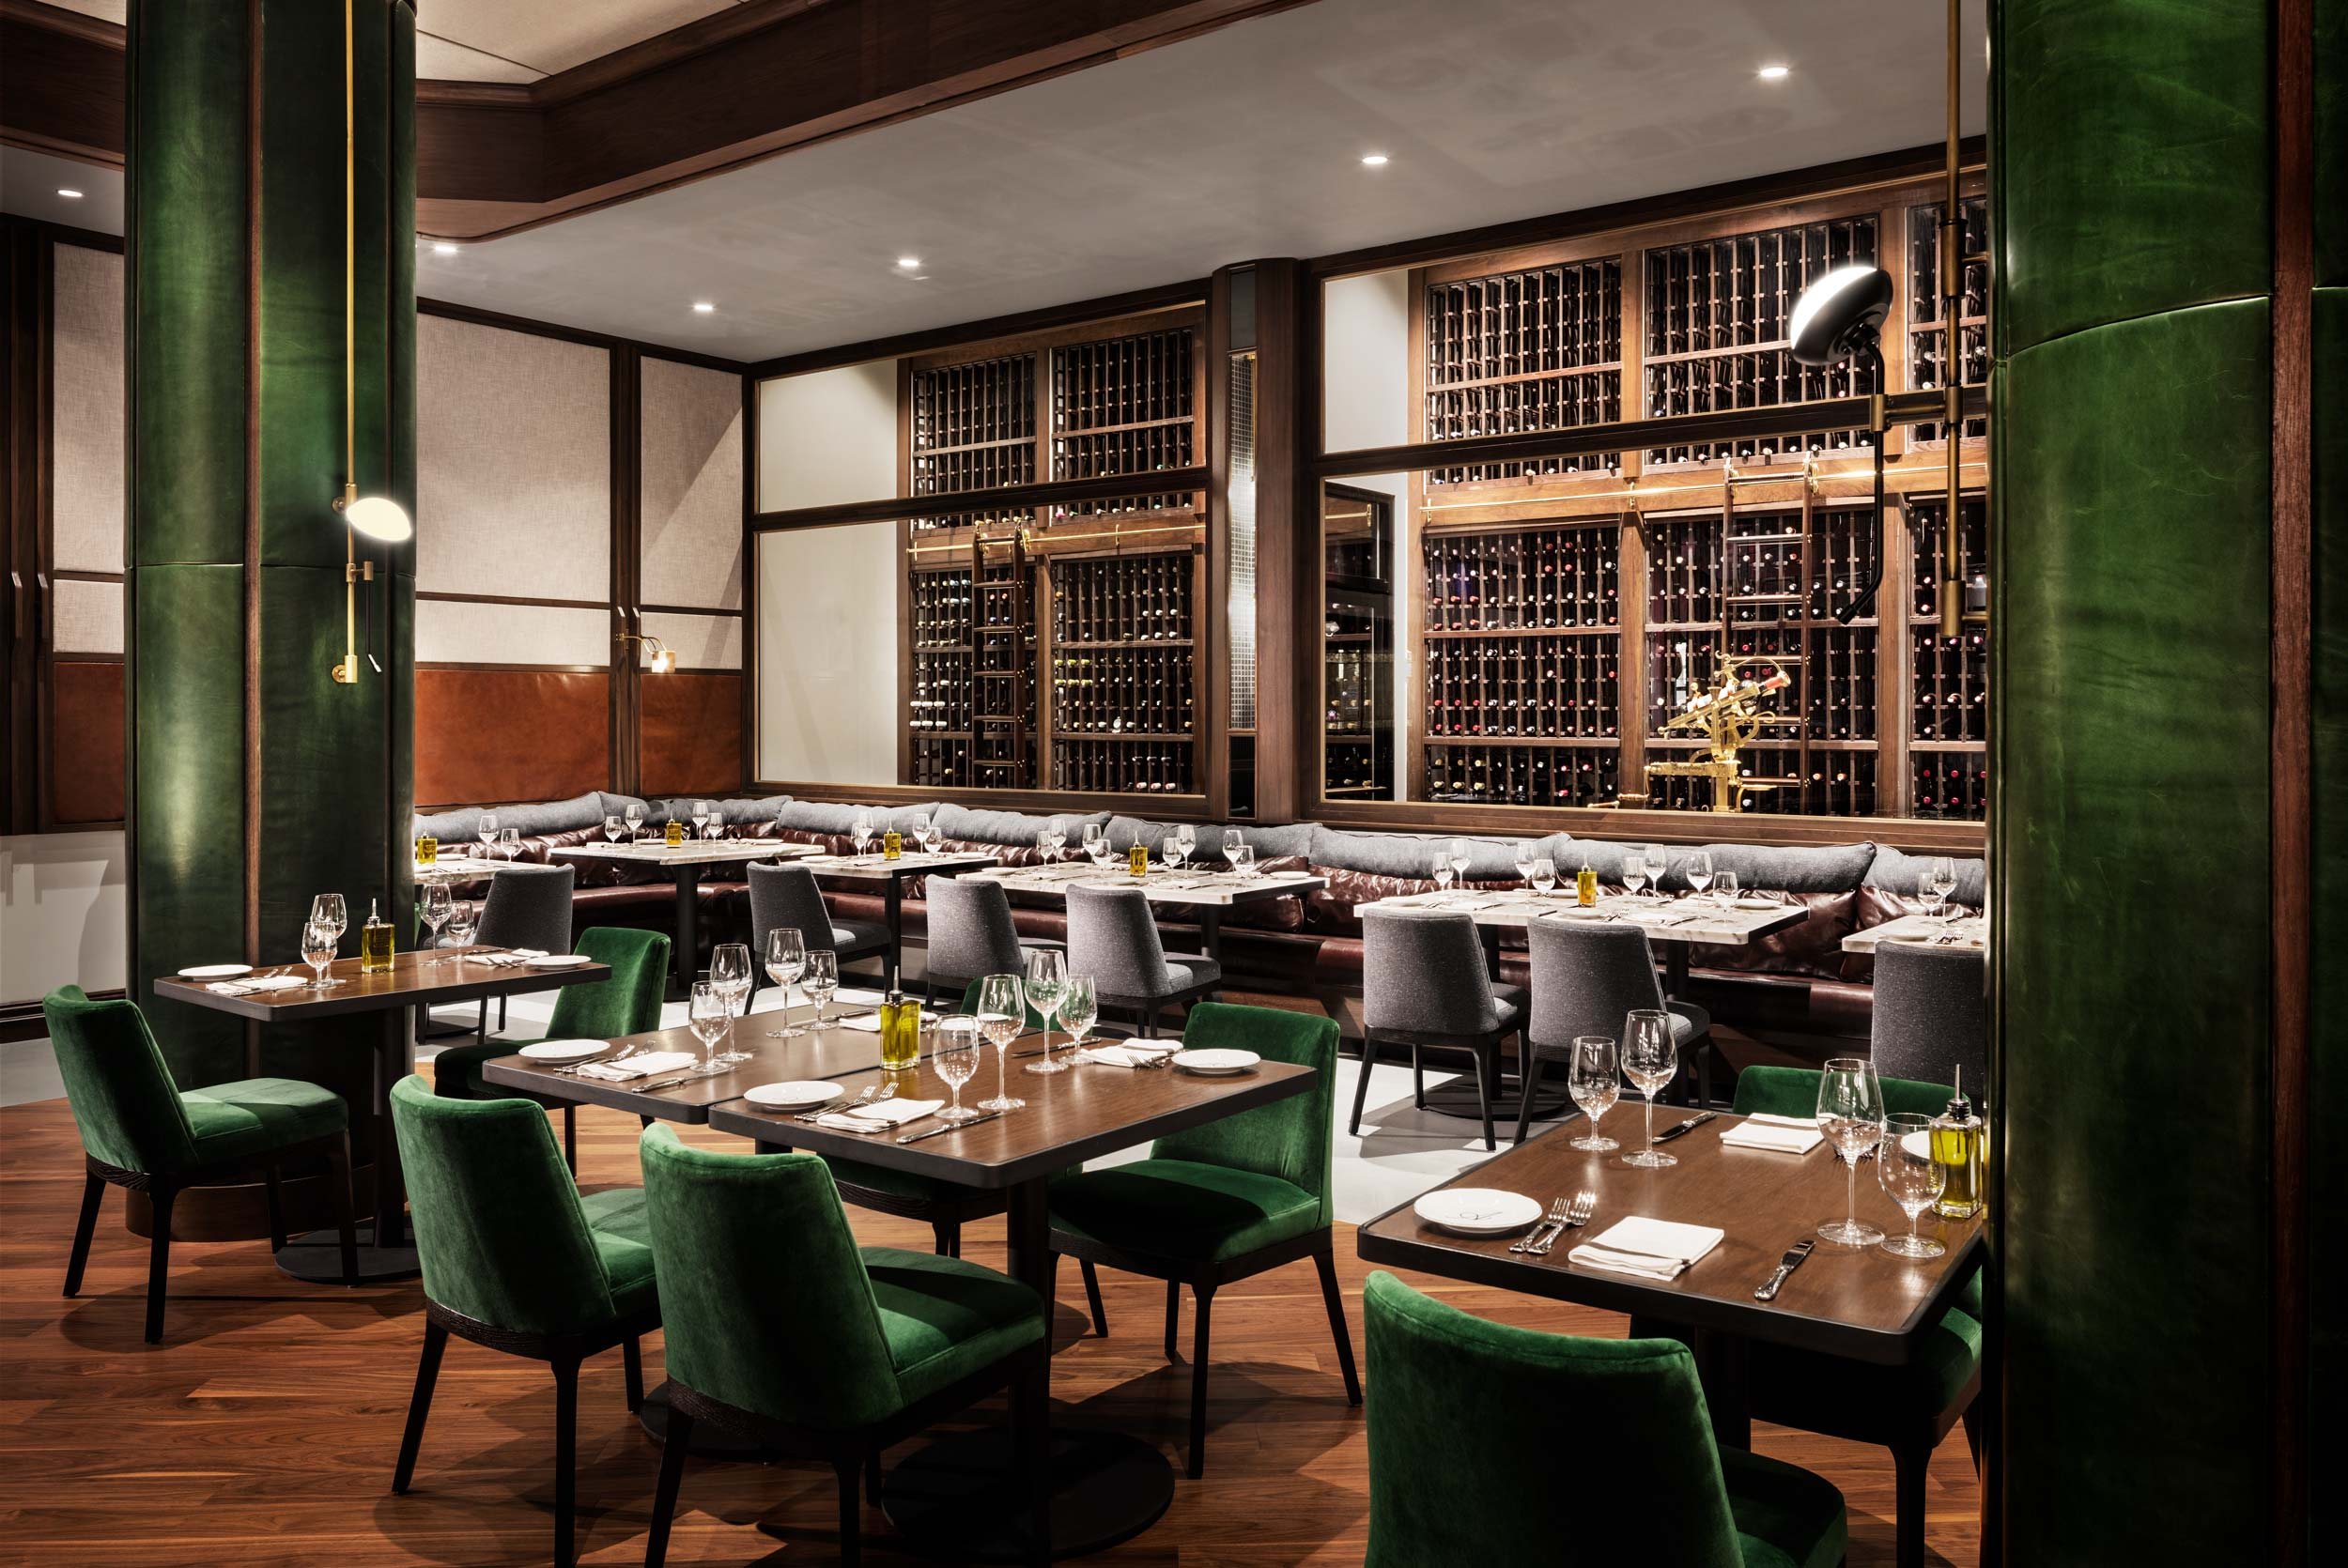 Dining Room of Angeline Restaurant from Chef Michael Symon designed by PLDC in Borgata